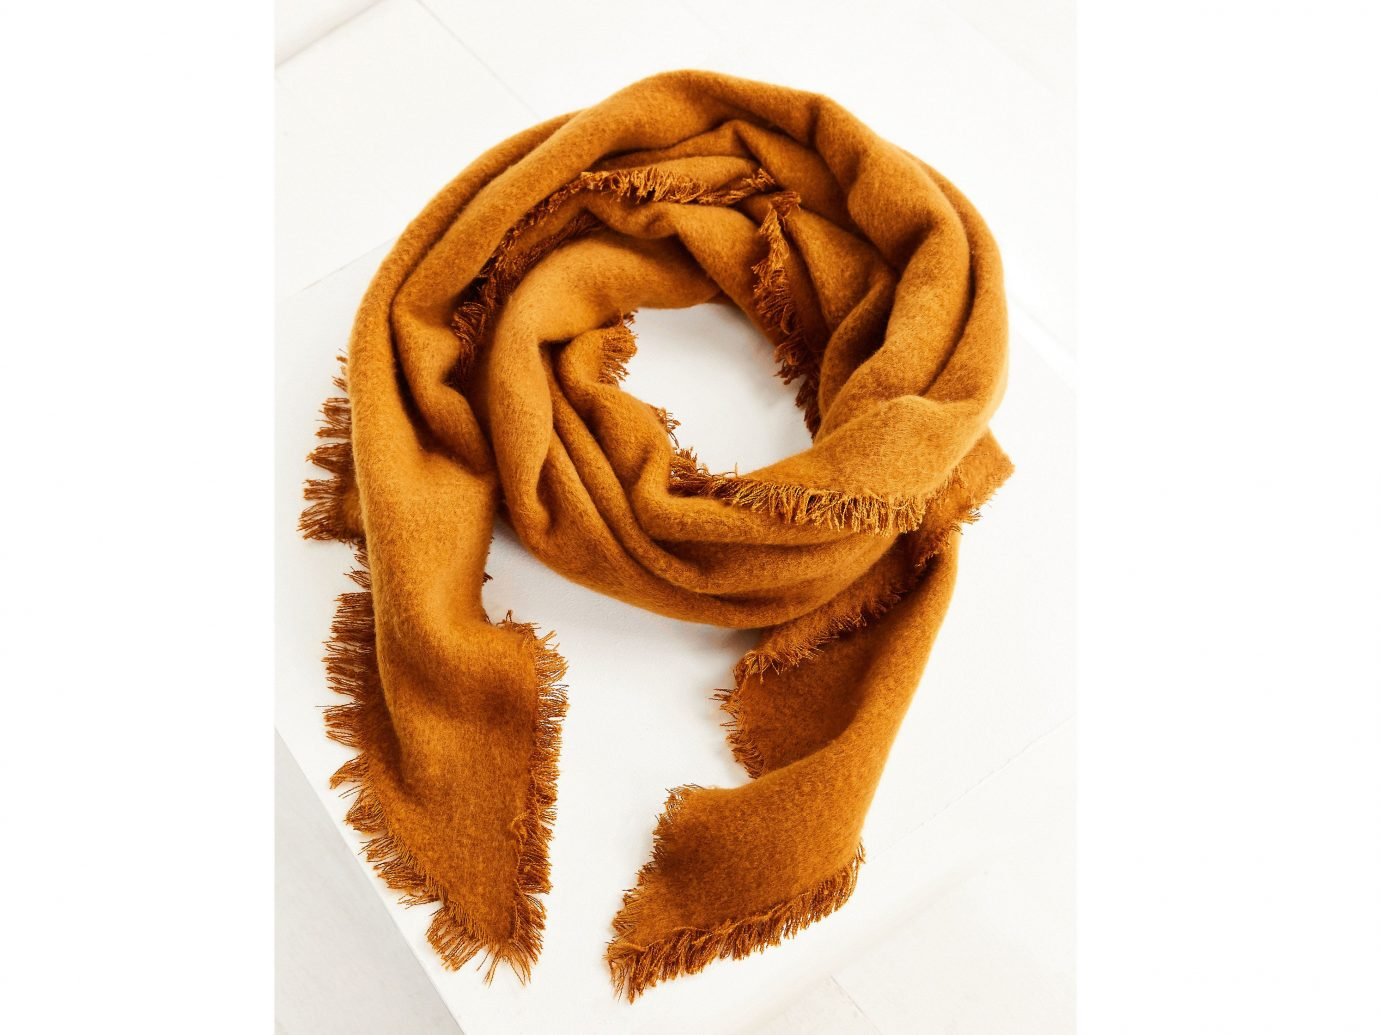 Style + Design scarf clothing fashion accessory orange brown cloth pattern textile wool